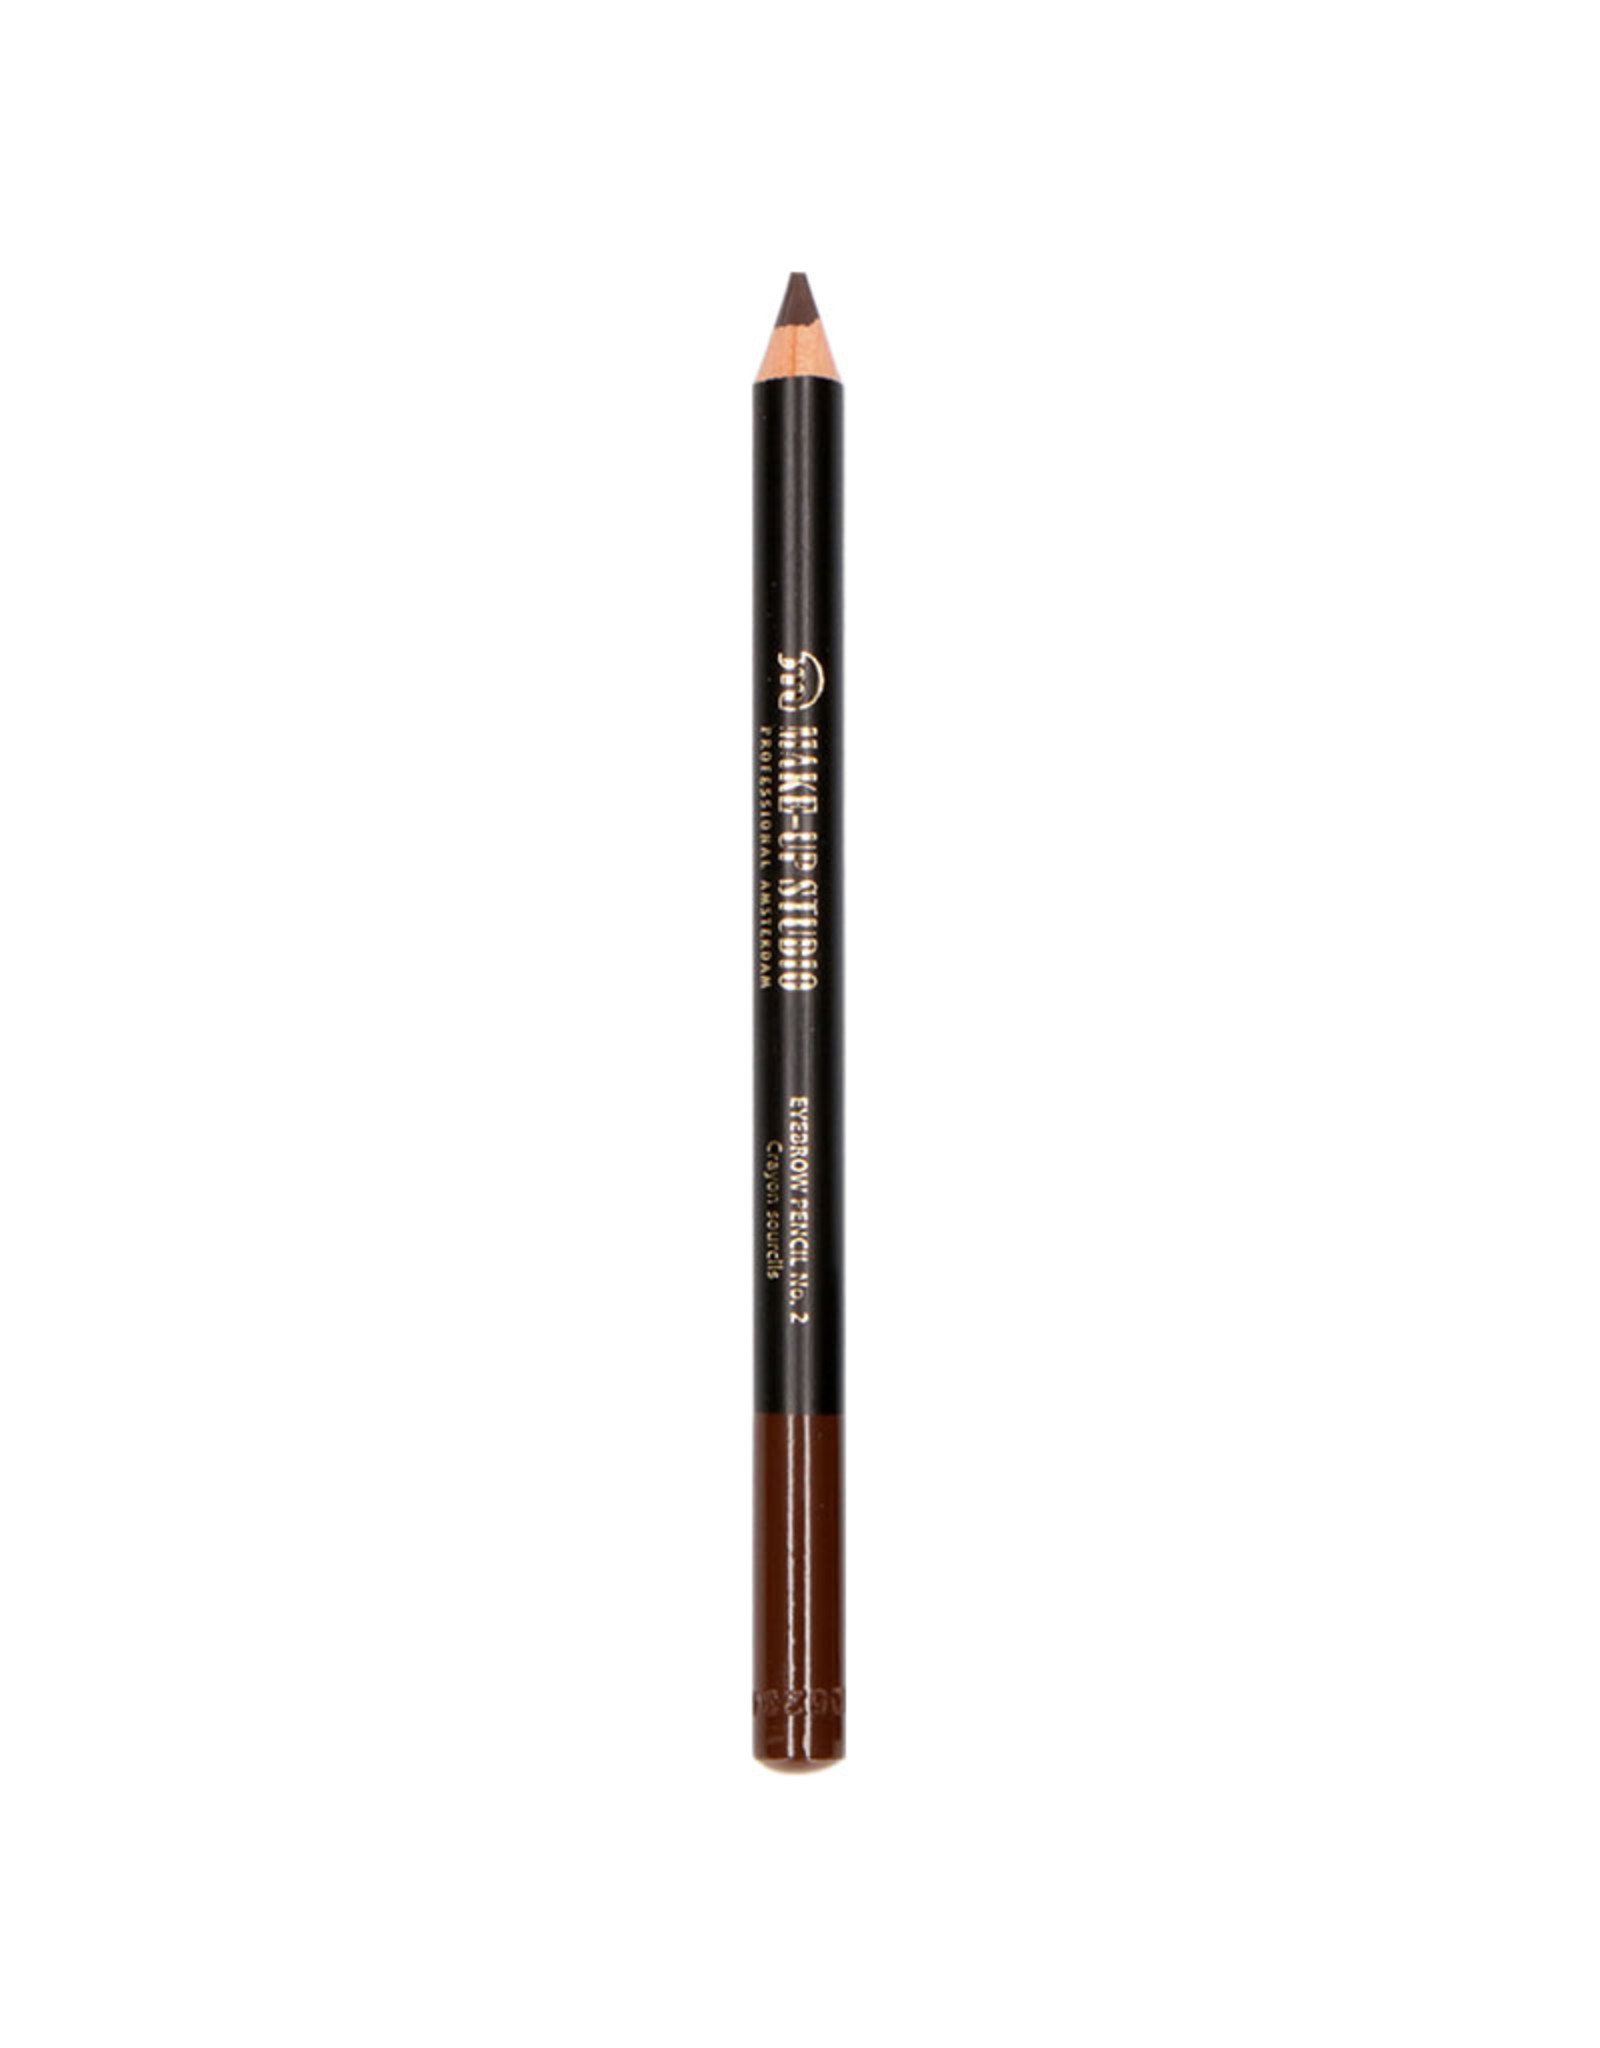 MAKE-UP STUDIO PENCIL EYEBROW 2